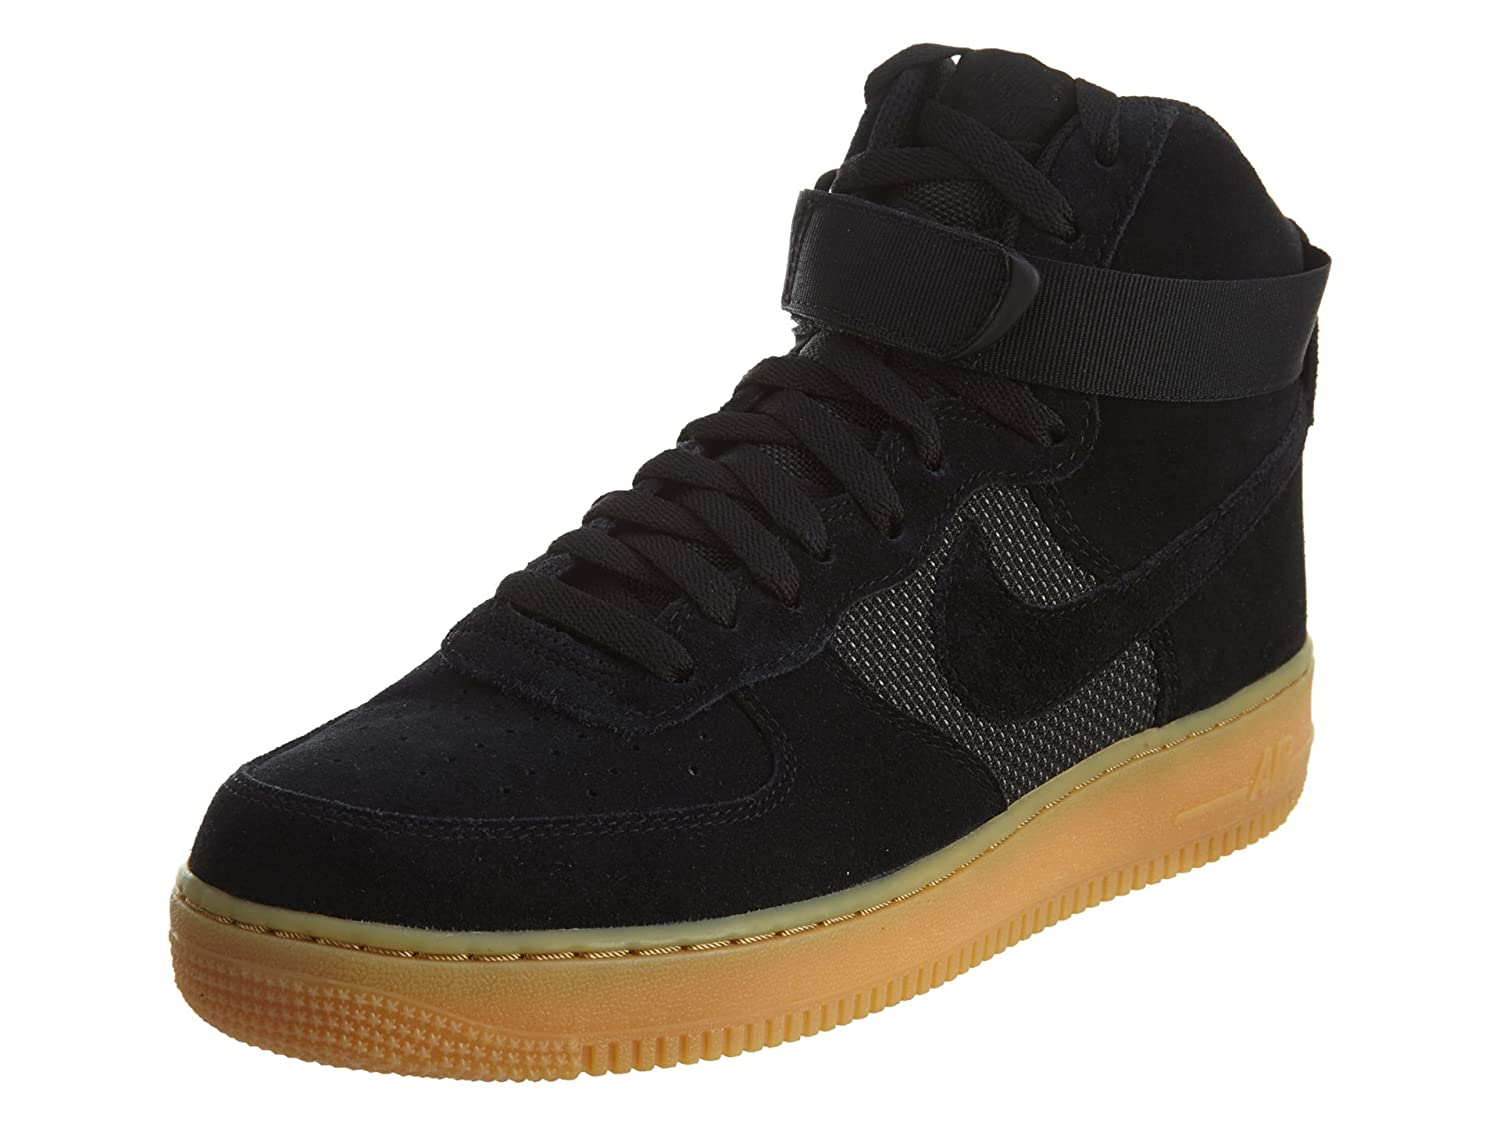 huge discount 5c3b0 c1d23 Nike Air Force One 1 High 07 LV8 Sneaker SchwarzBraun 40 EUSchwarz -  associate-degree.de